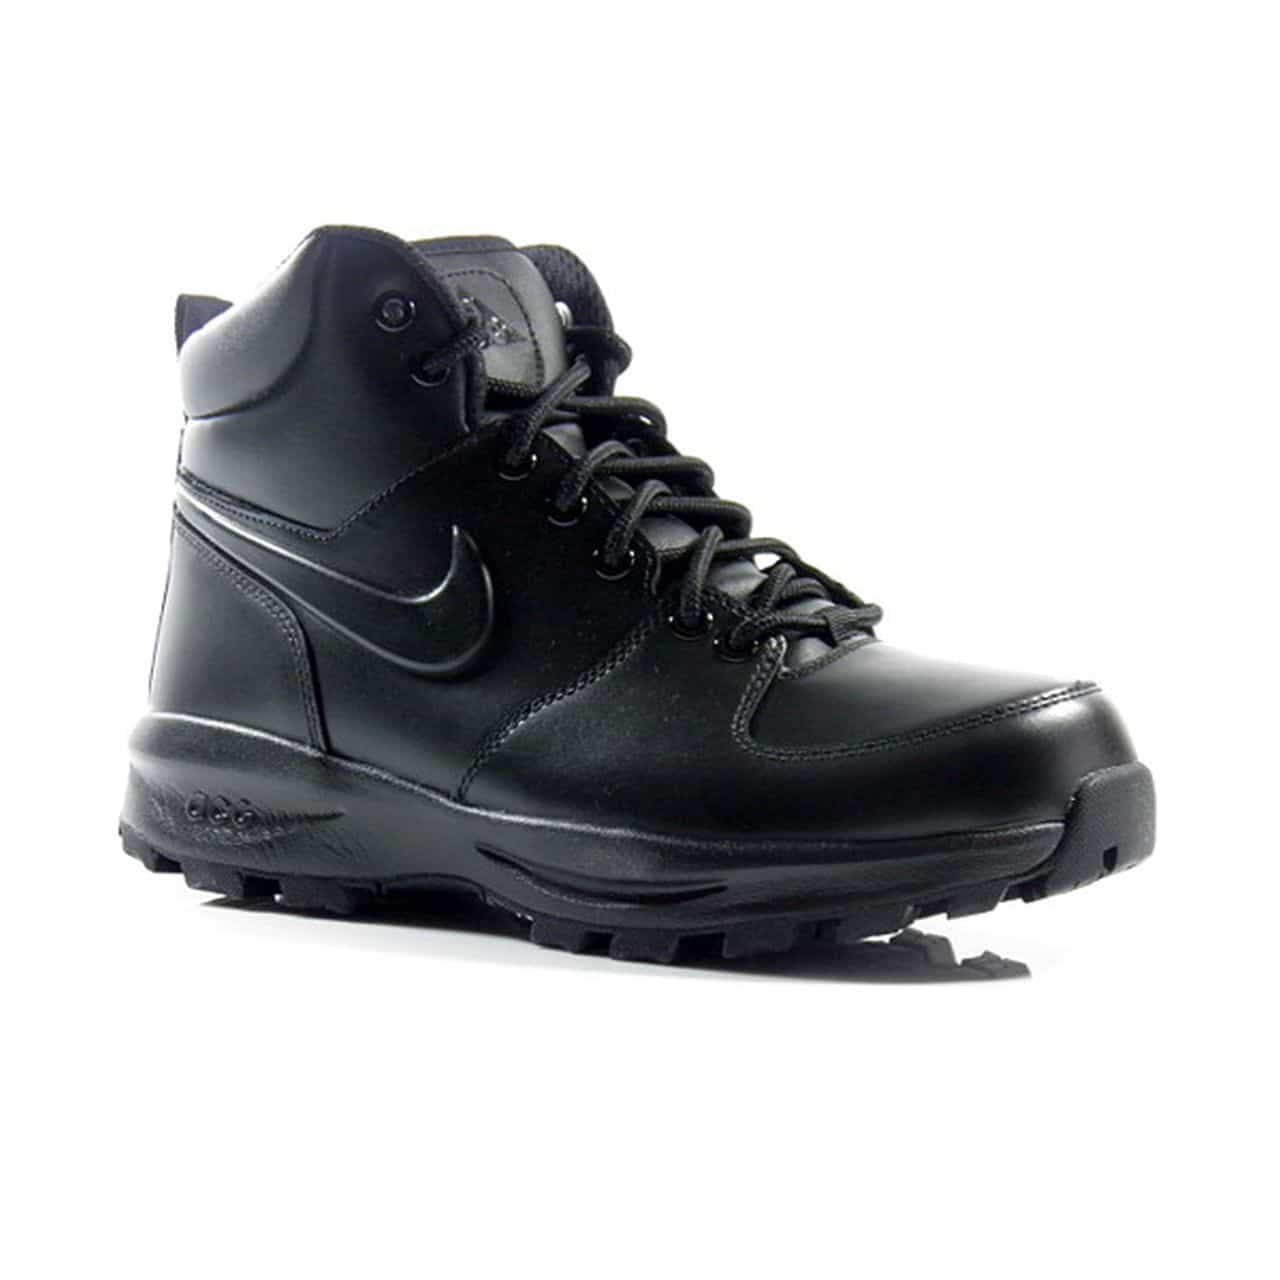 GHETE ORIGINALE NIKE MANOLA LEATHER - 454350 003